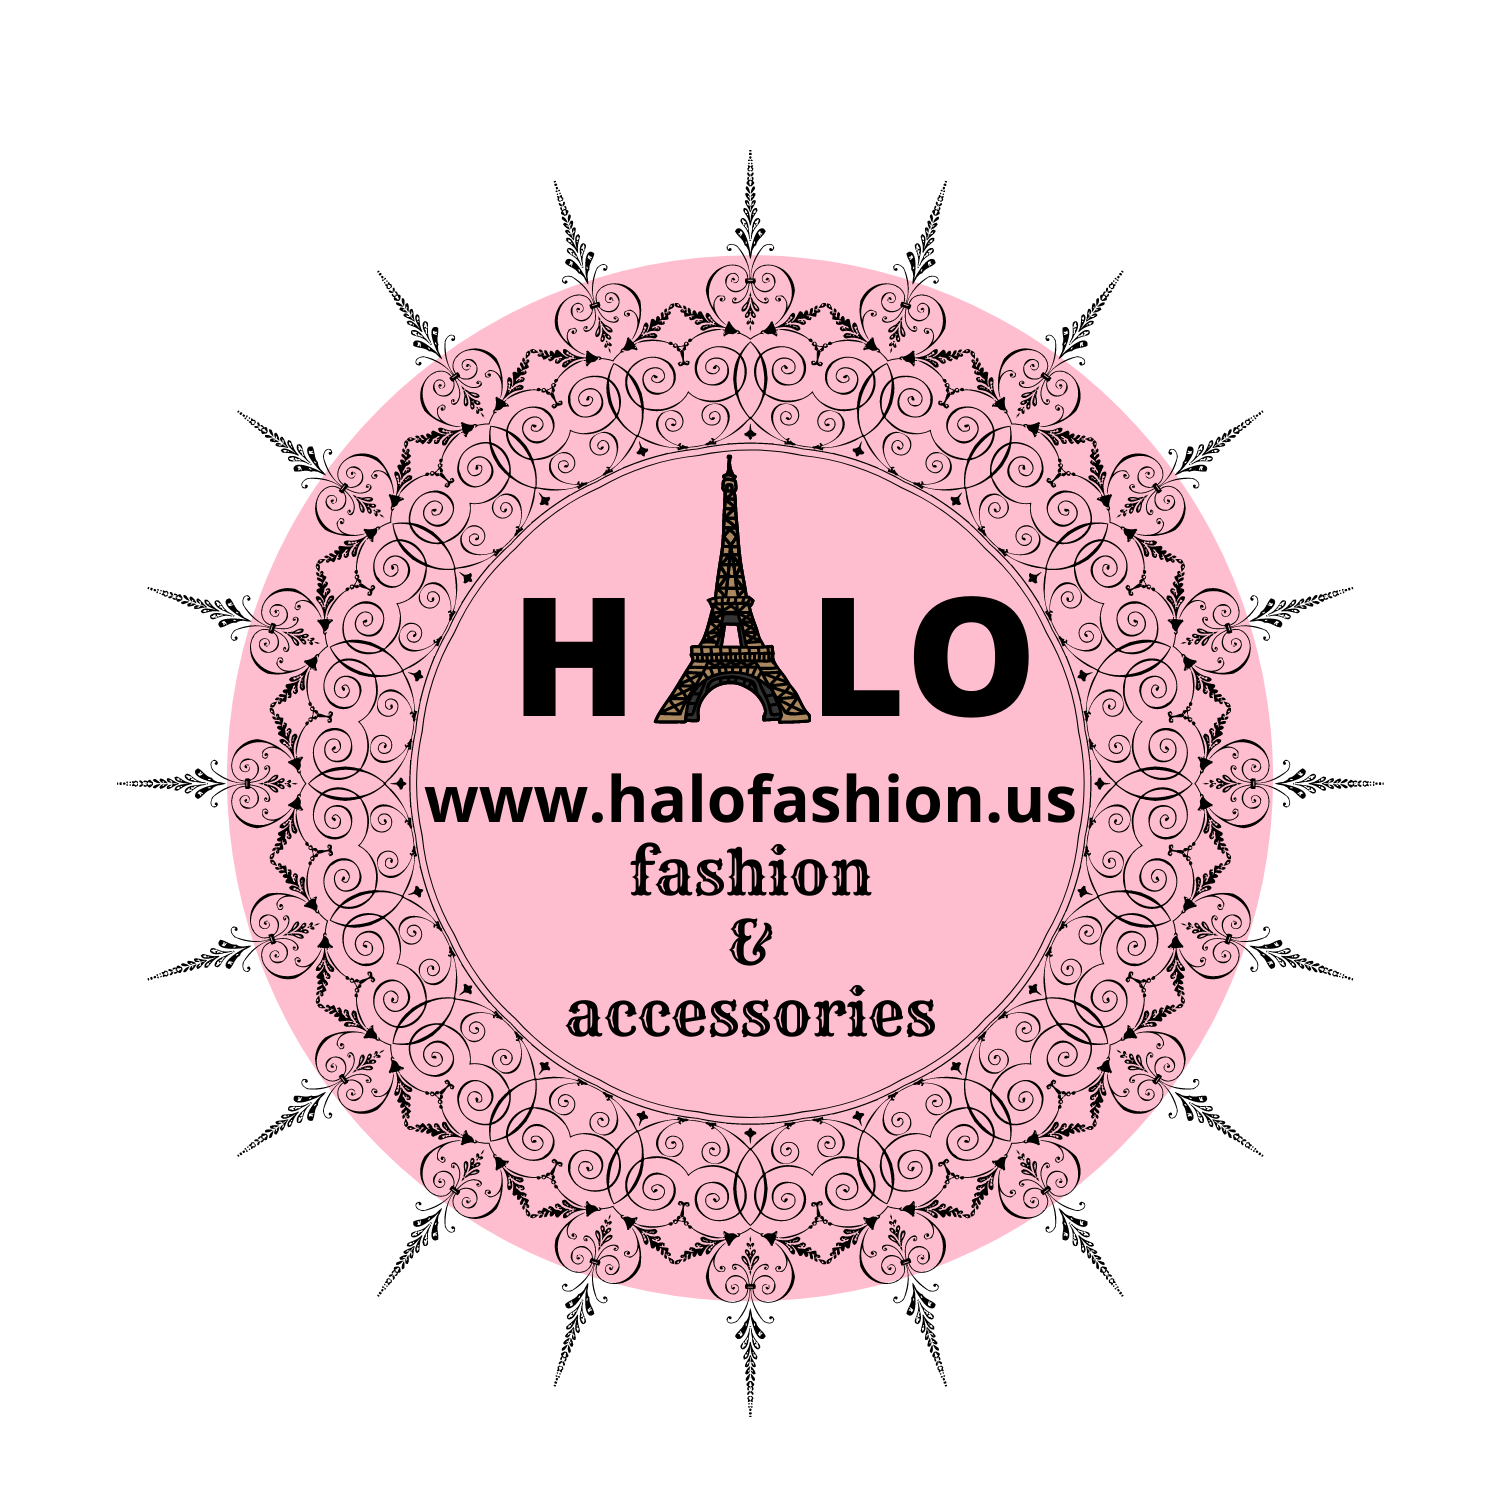 HALO FASHION